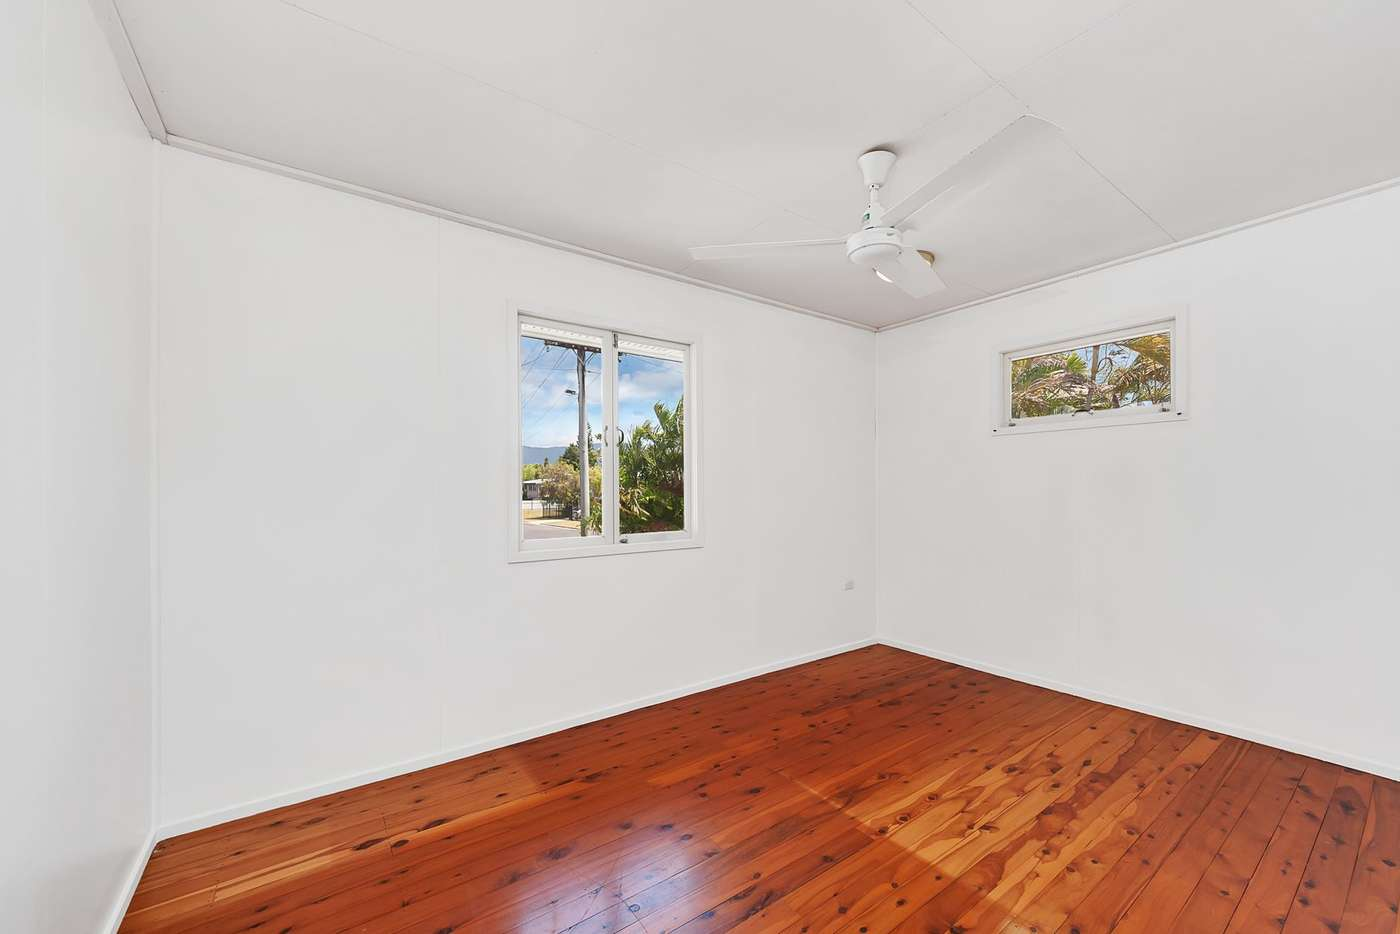 Sixth view of Homely house listing, 128 Wilkinson Street, Manunda QLD 4870